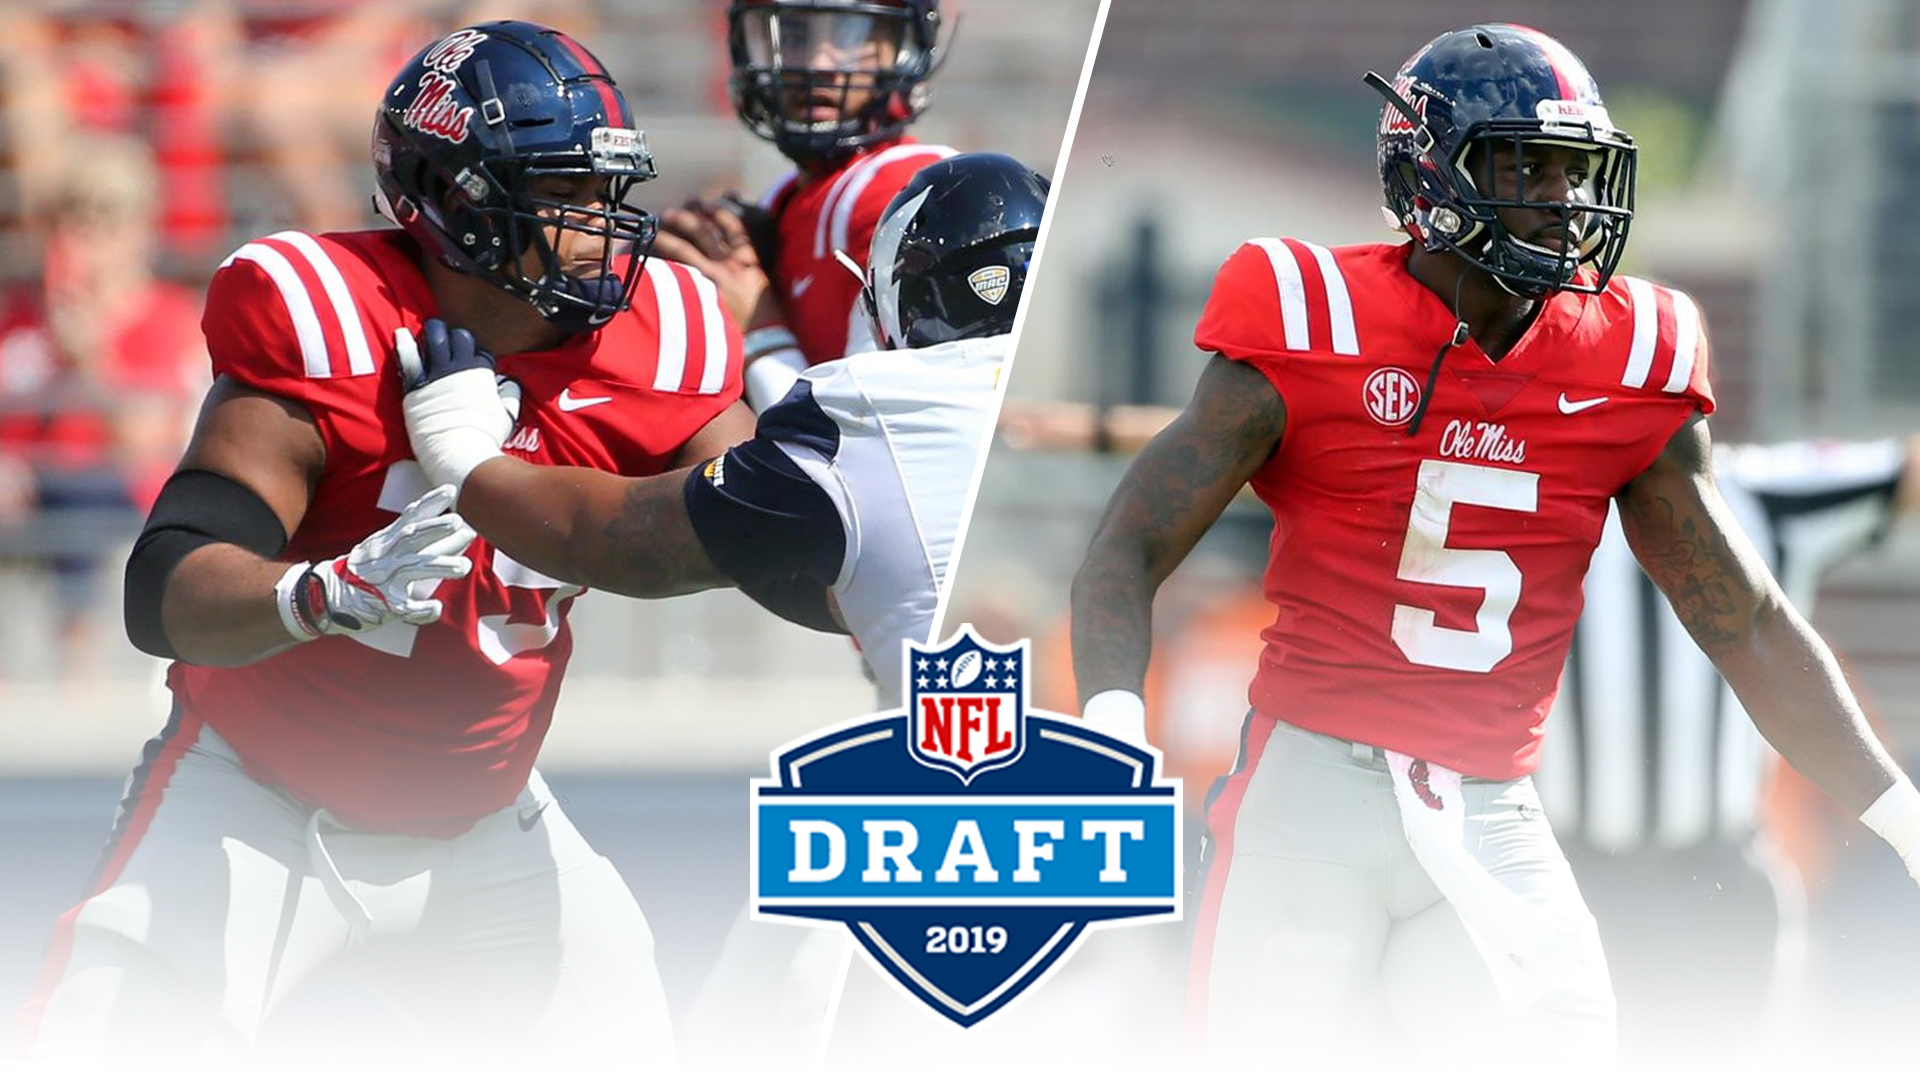 hot sale online c7162 29b7d Two Rebels Taken in Seventh Round of NFL Draft - Ole Miss ...